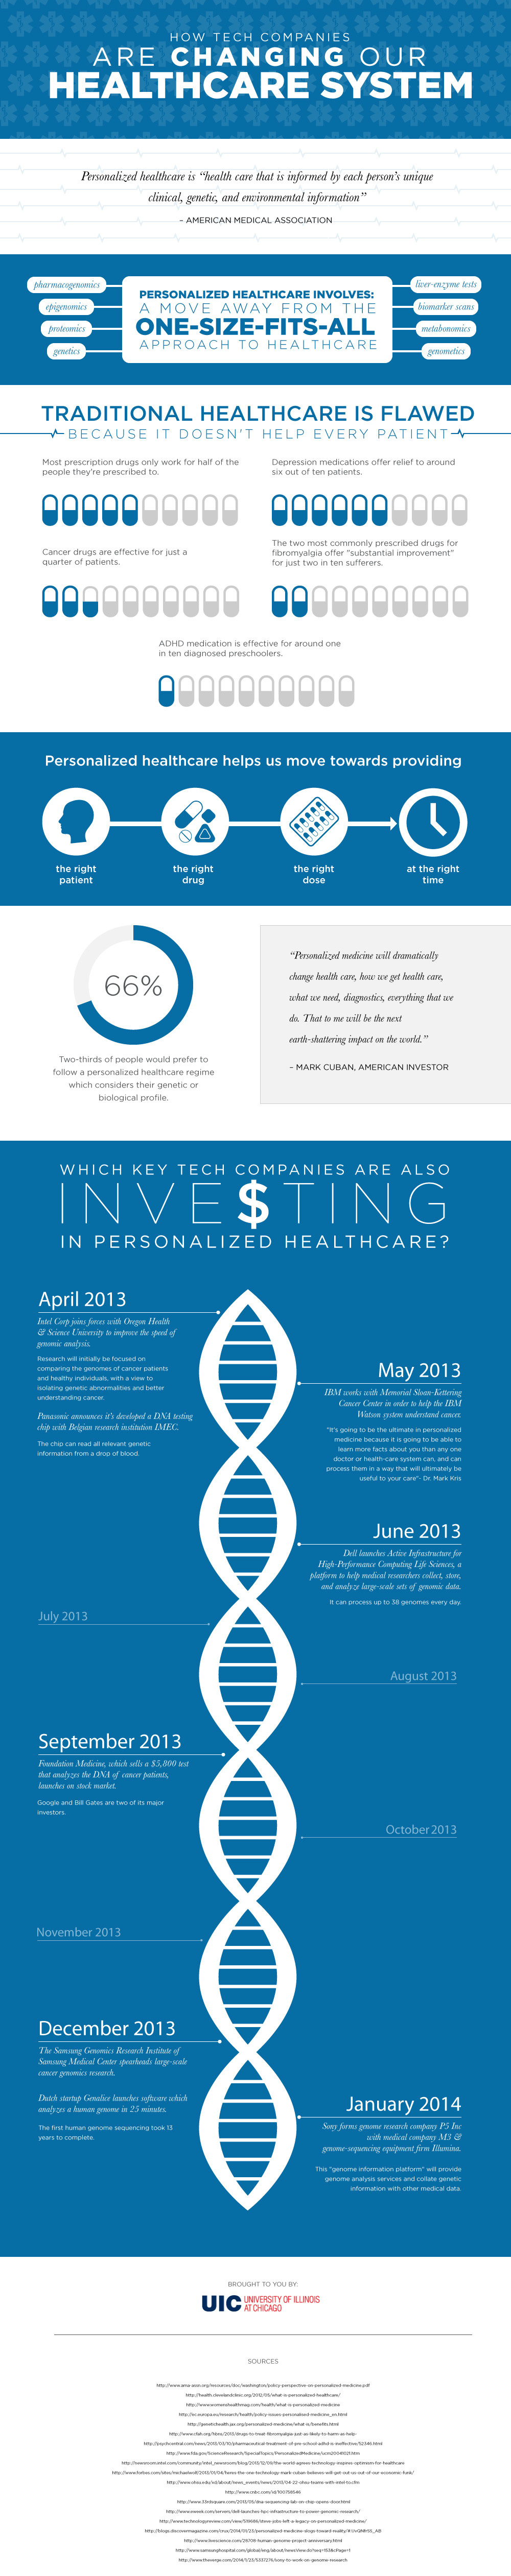 How Tech Companies are Changing Our Healthcare System [Infographic] - Image 1